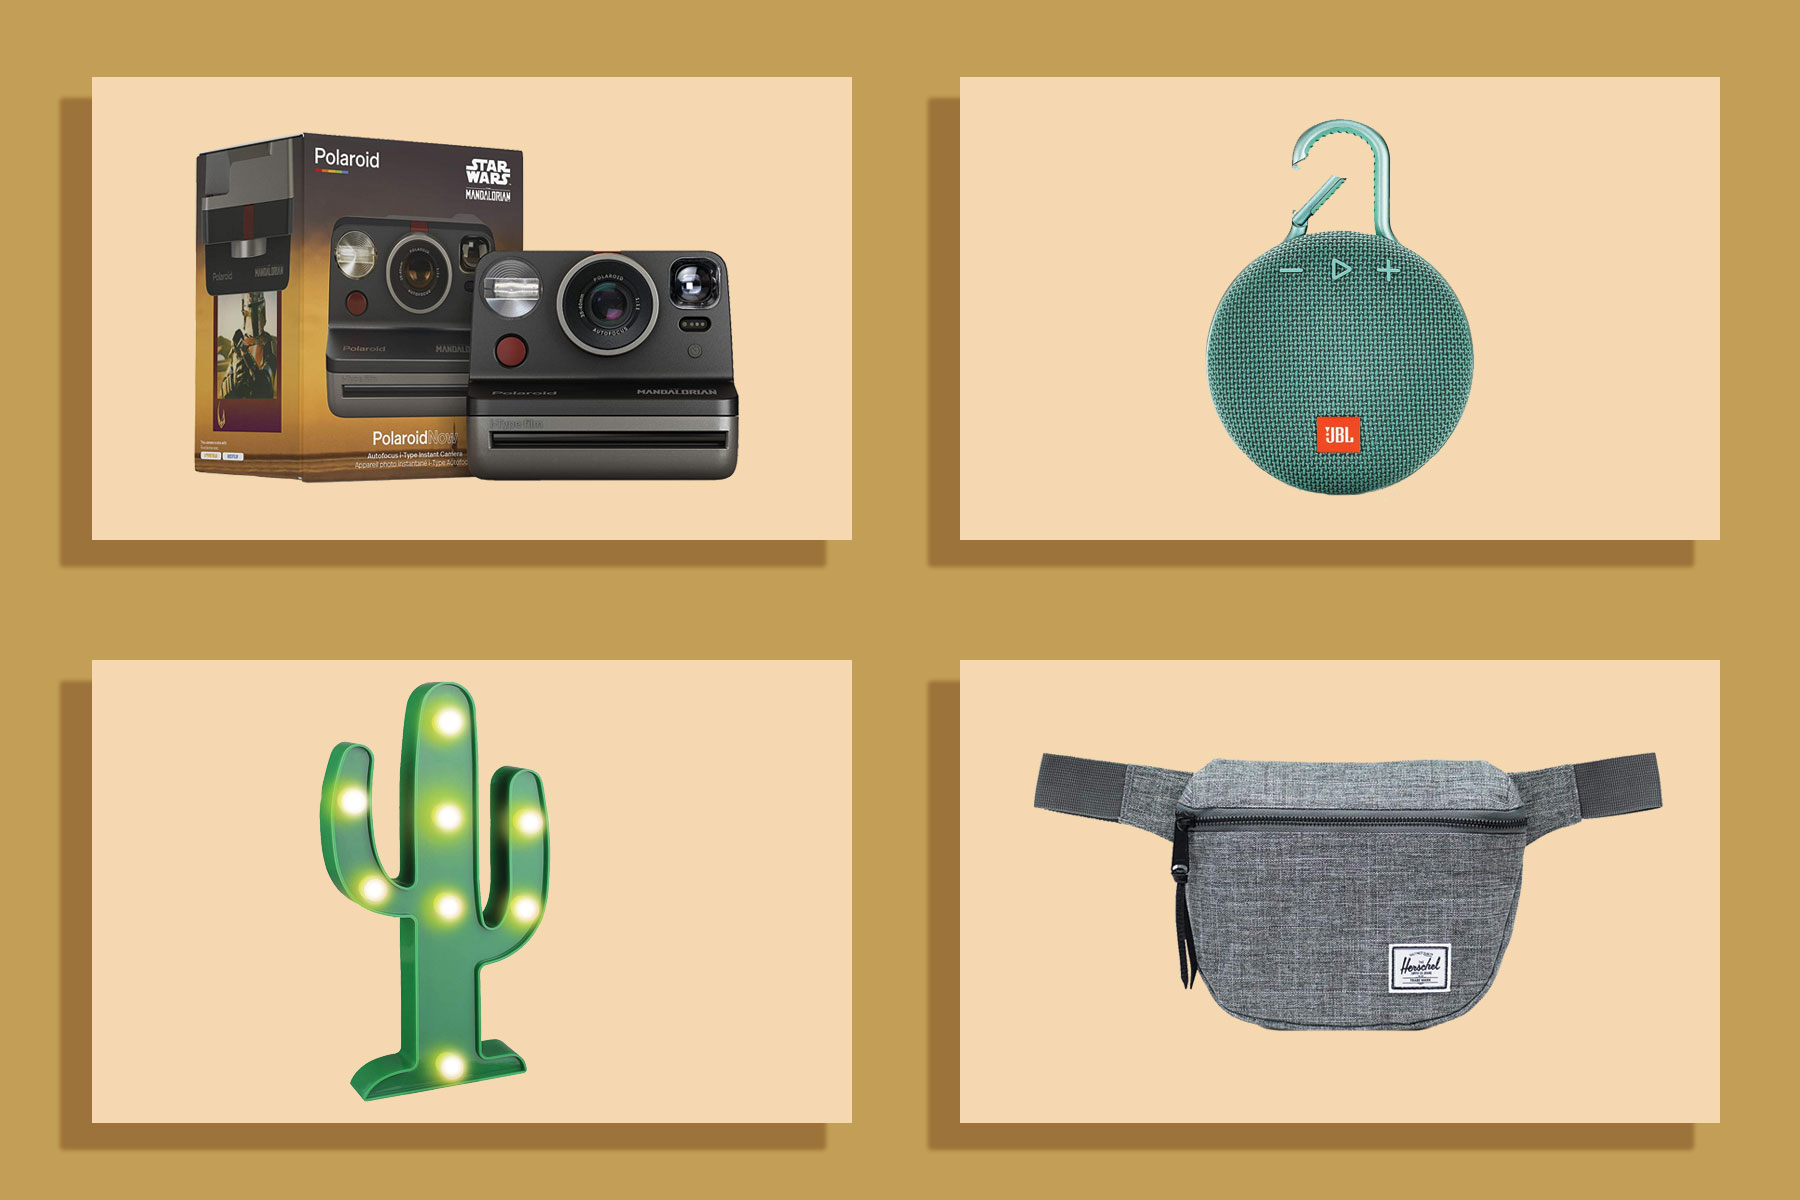 Camera, speaker, cactus light, fanny pack